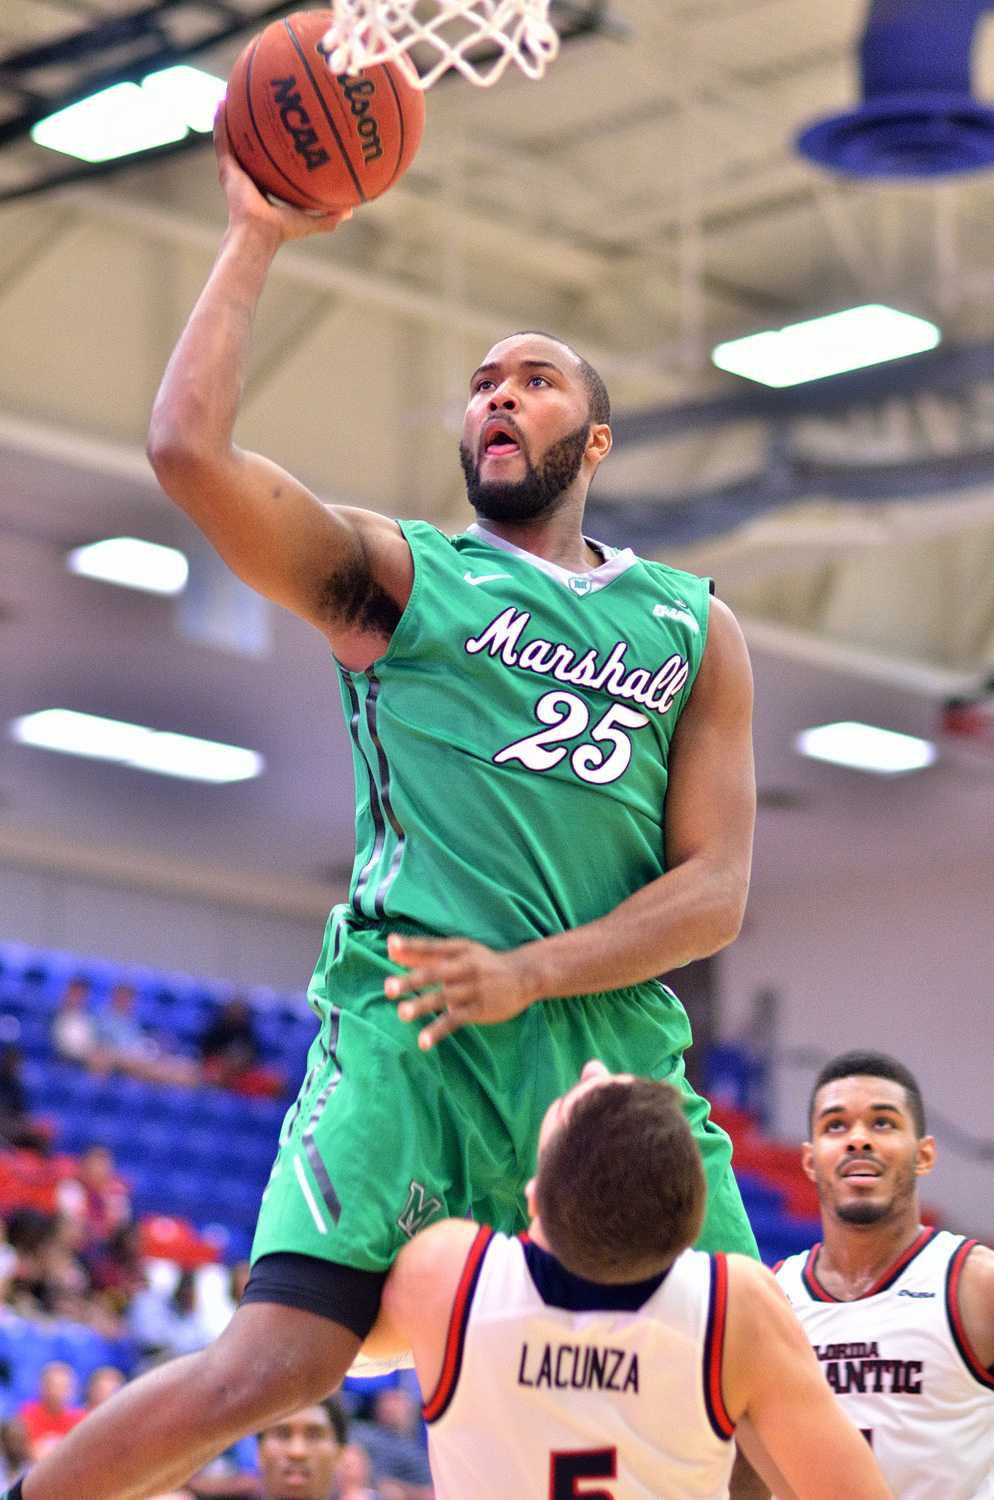 Marshall forward Ryan Taylor (25) cruises to complete a layup against FAU forward Javier Lacunza (5). Taylor led the Thundering Herd with 24 points.